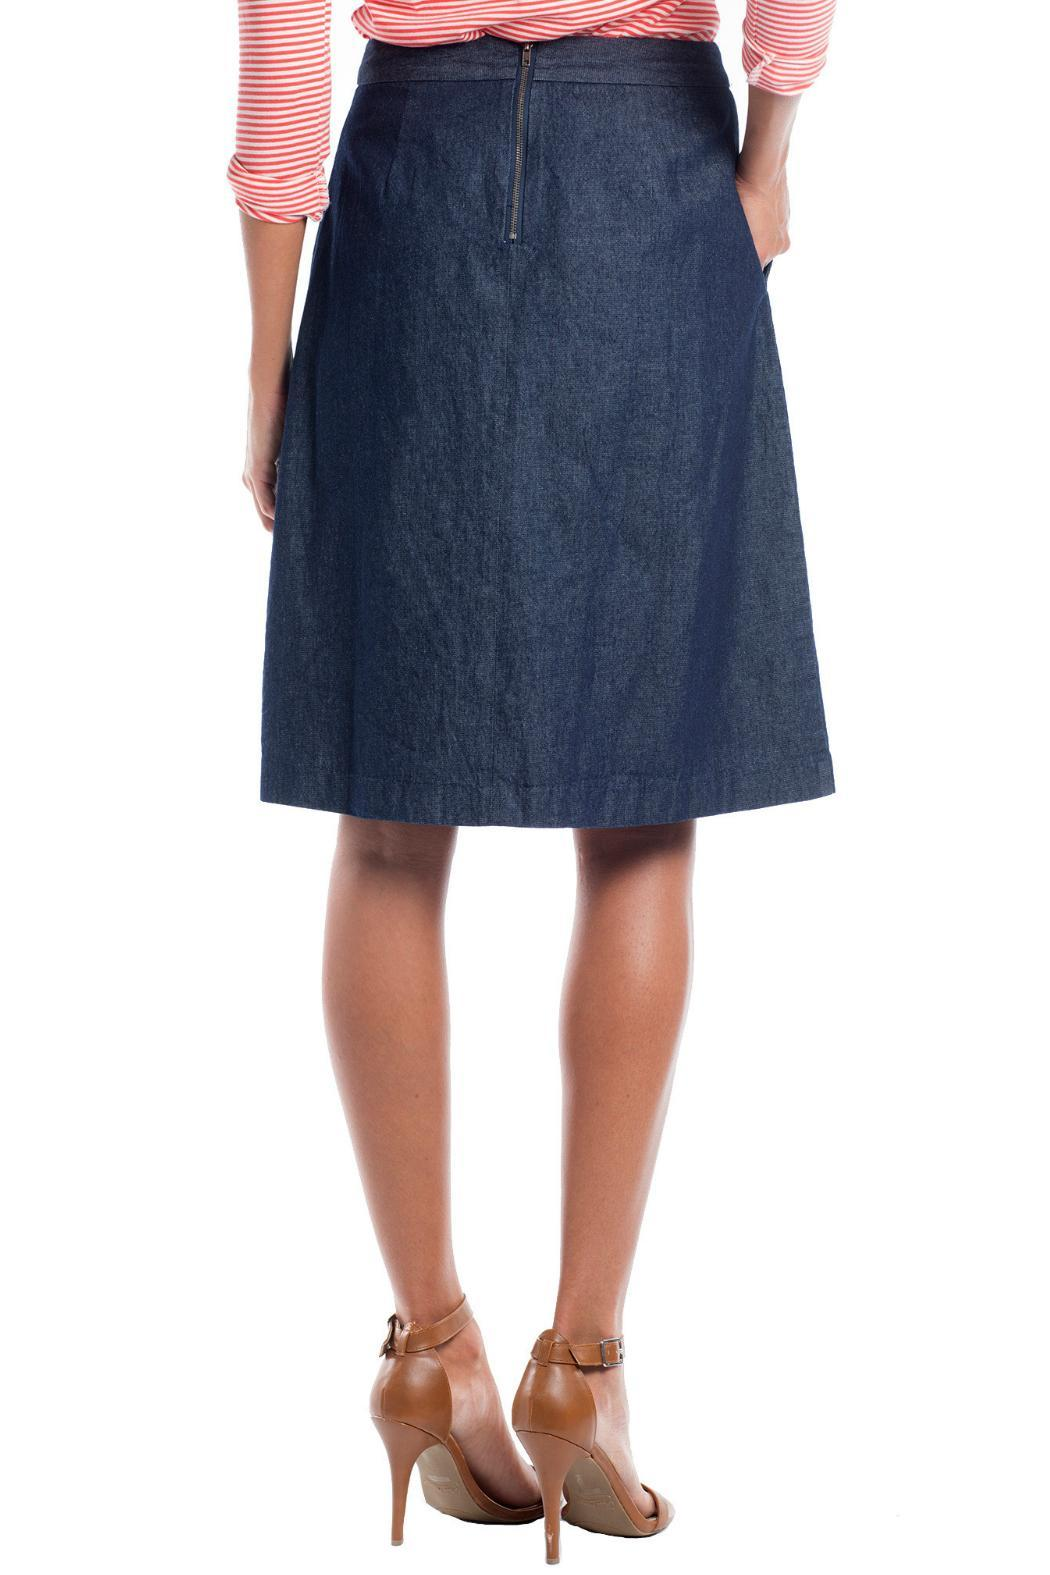 Ruelle Boutique Blue Jean Skirt - Front Full Image